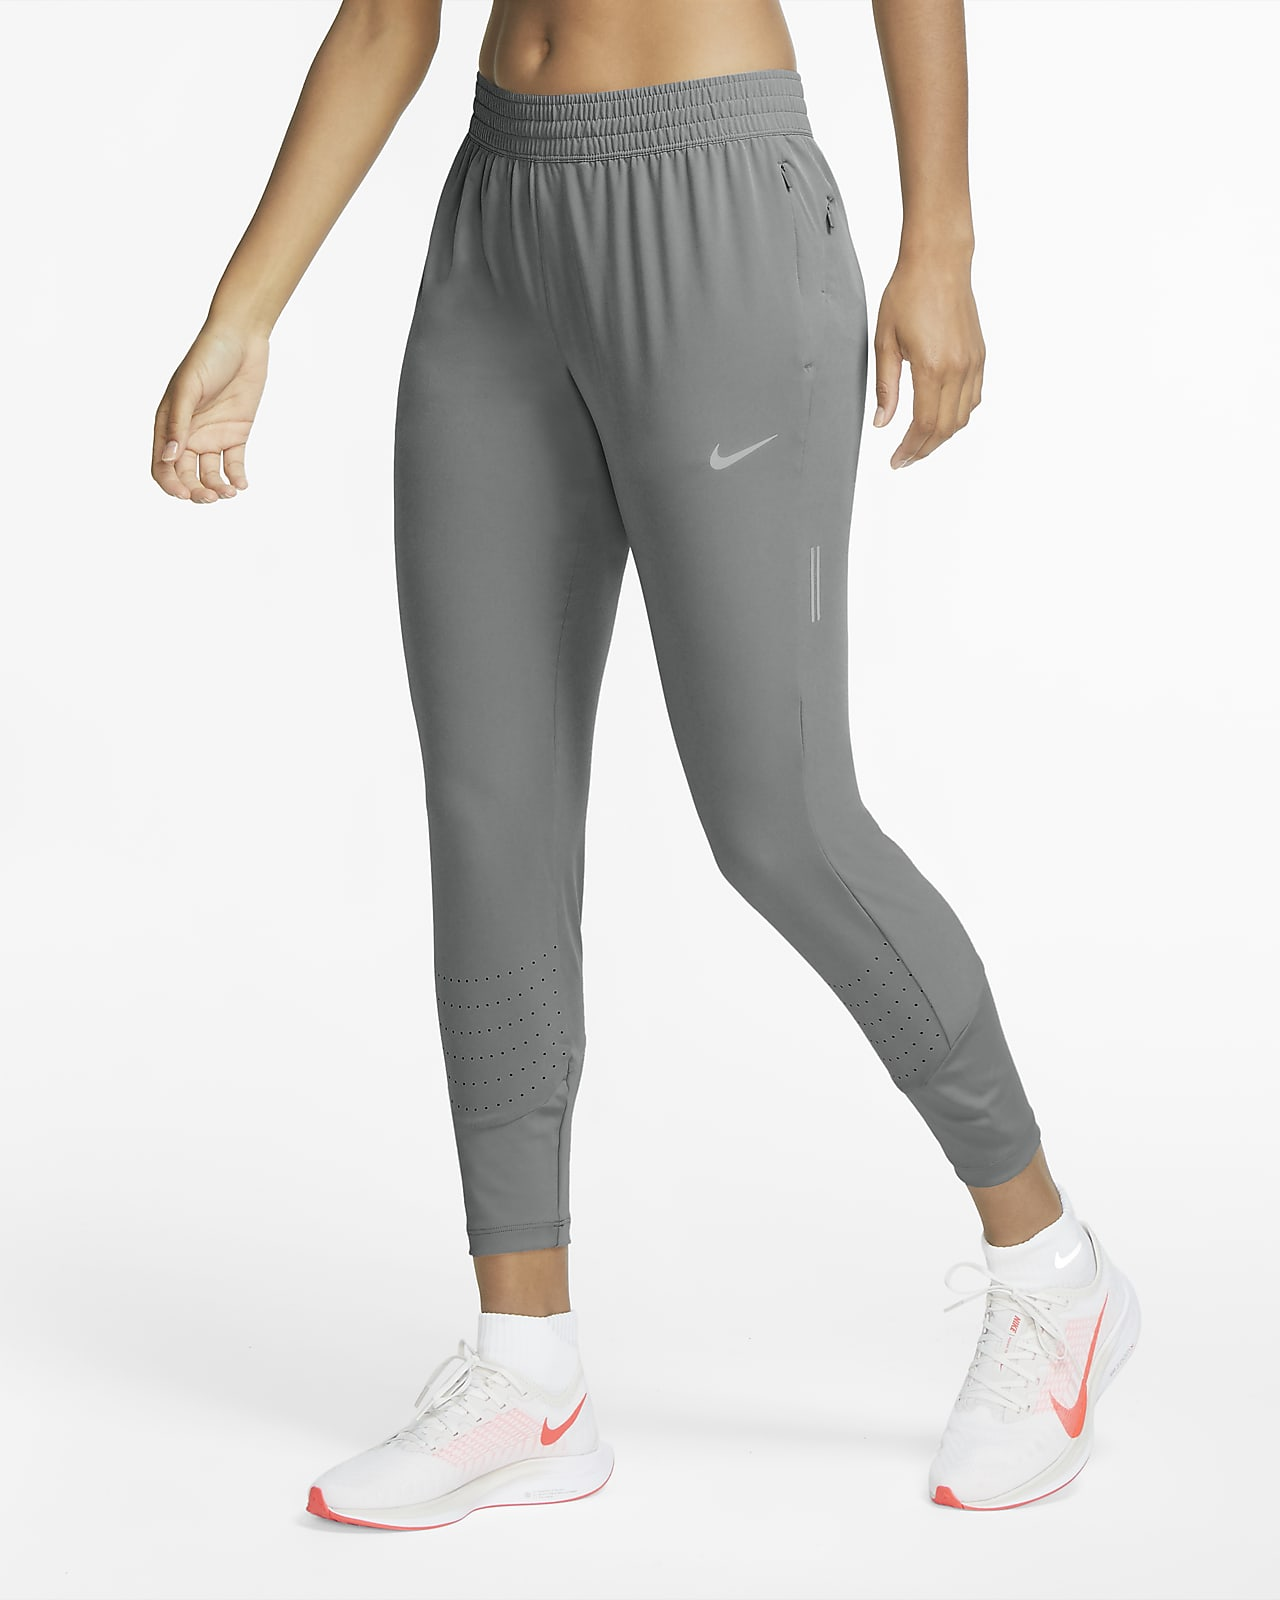 Nike Swift Women's Running Pants